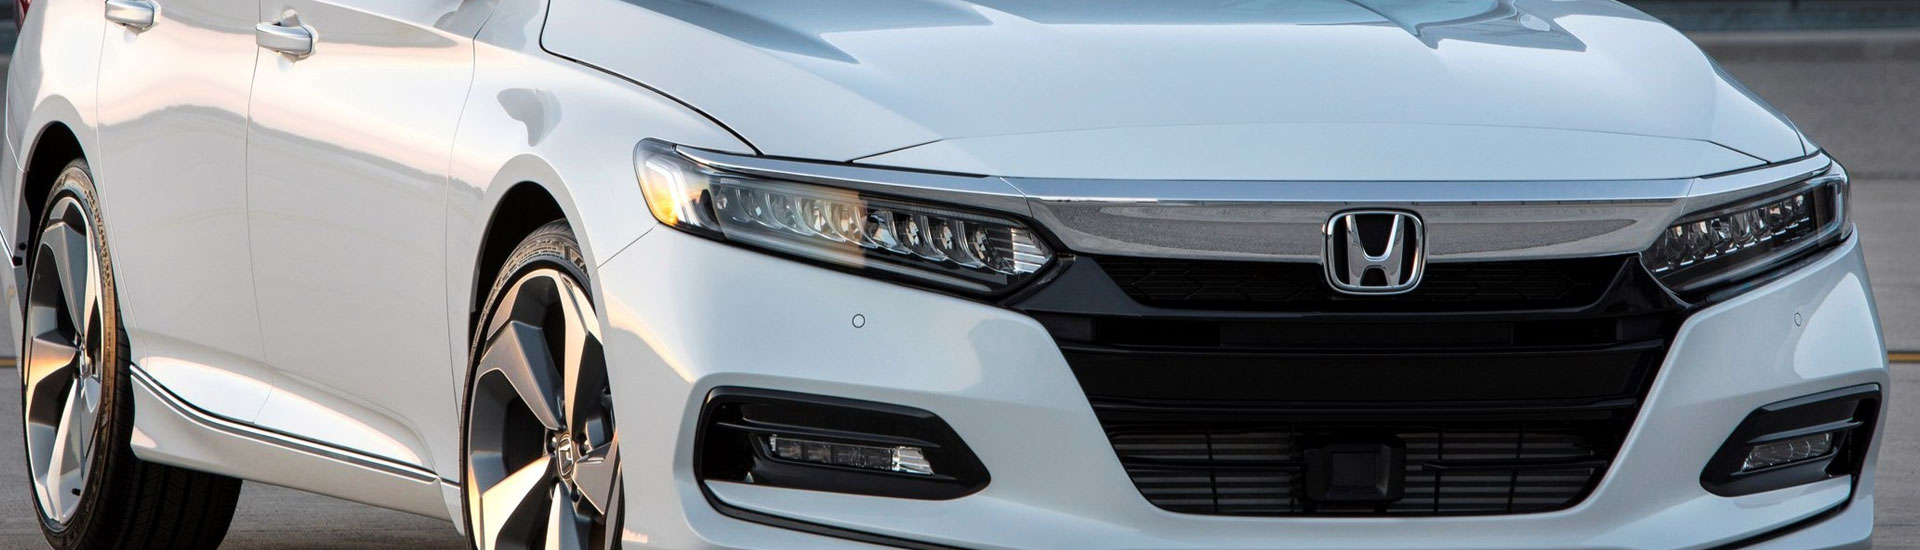 hight resolution of honda accord headlight tint covers